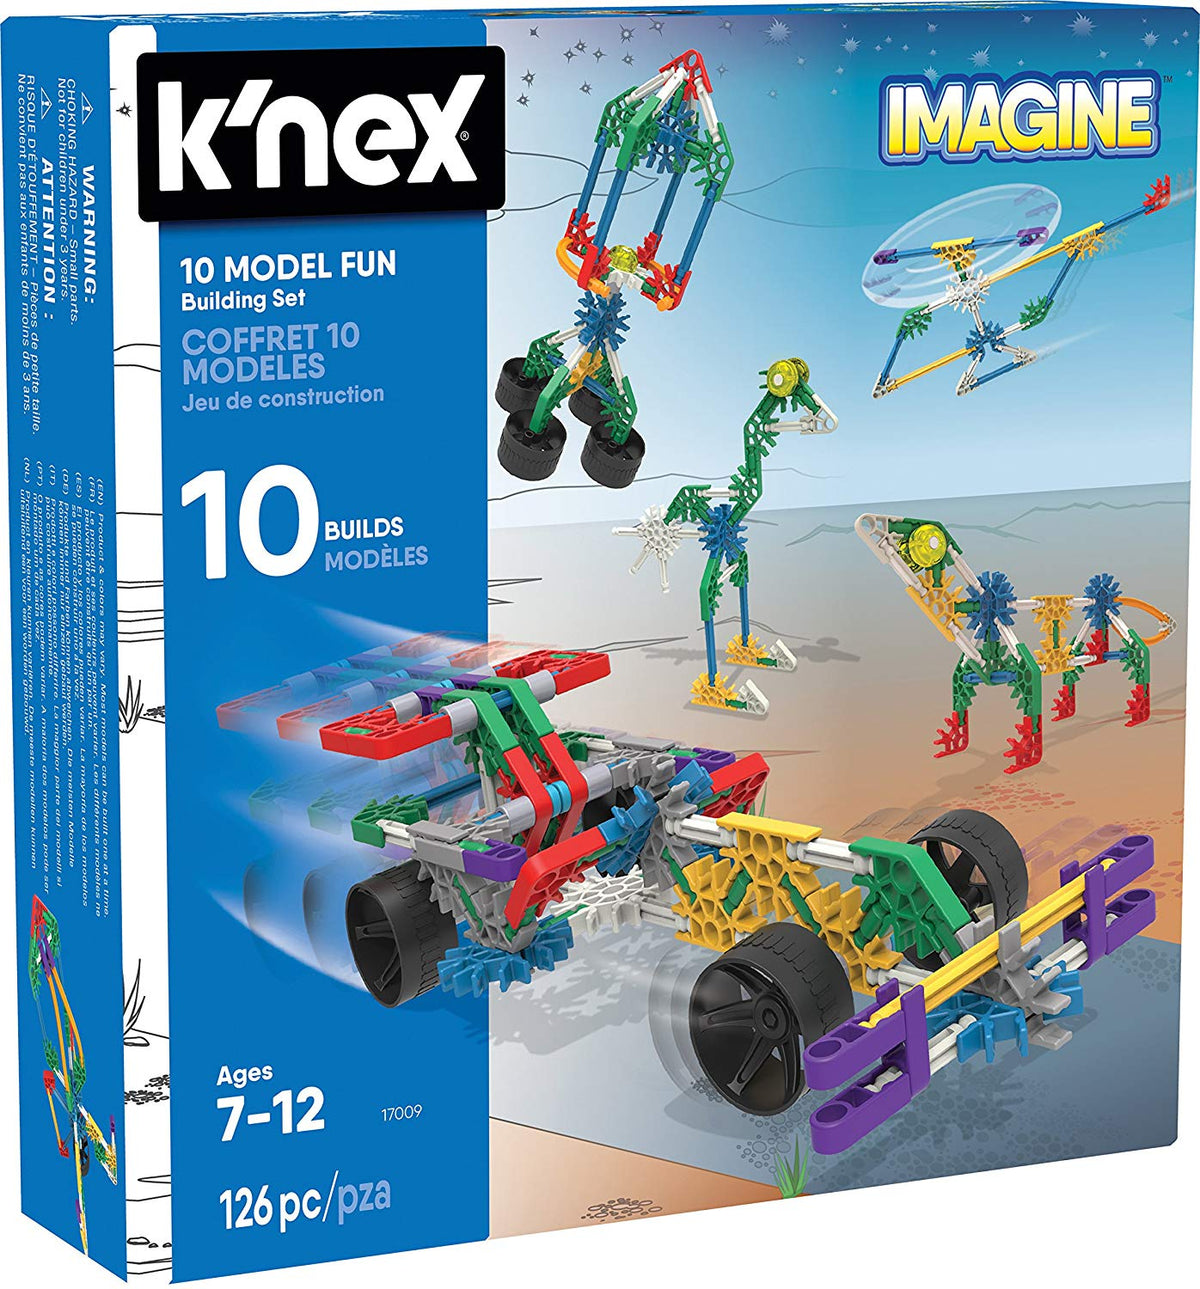 KNEX Imagine 10 Model Building Set